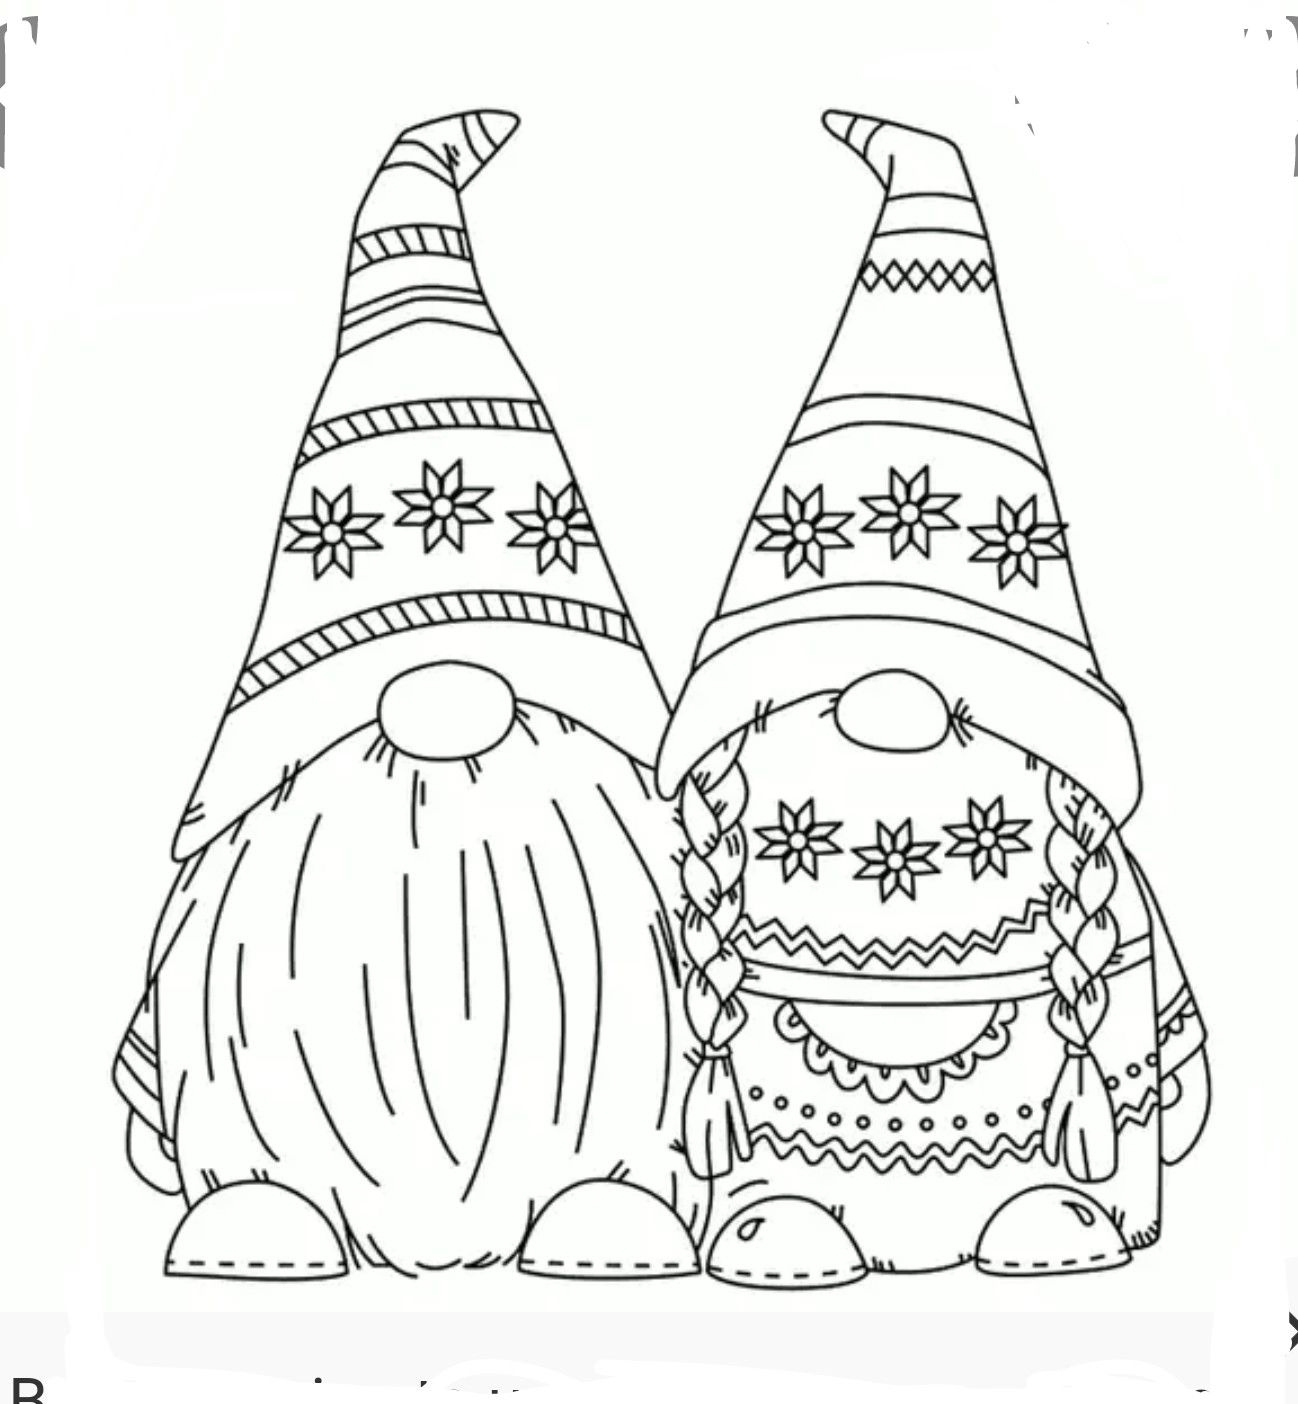 Pin by Debbie McGinnis on gnomes in 2020 Gnomes crafts